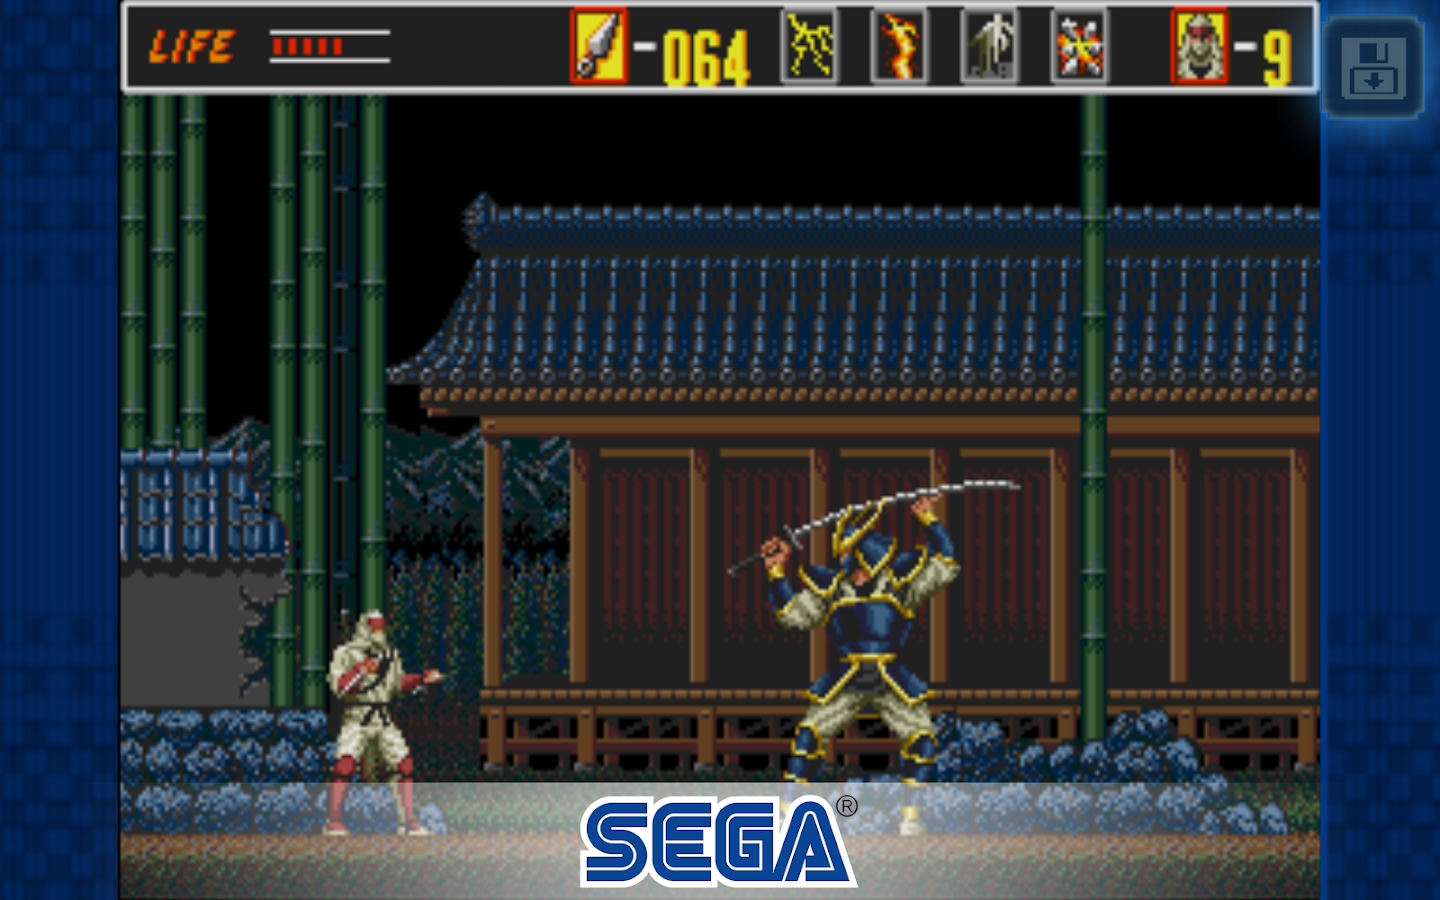 The Revenge of Shinobi Classic Screenshot 7